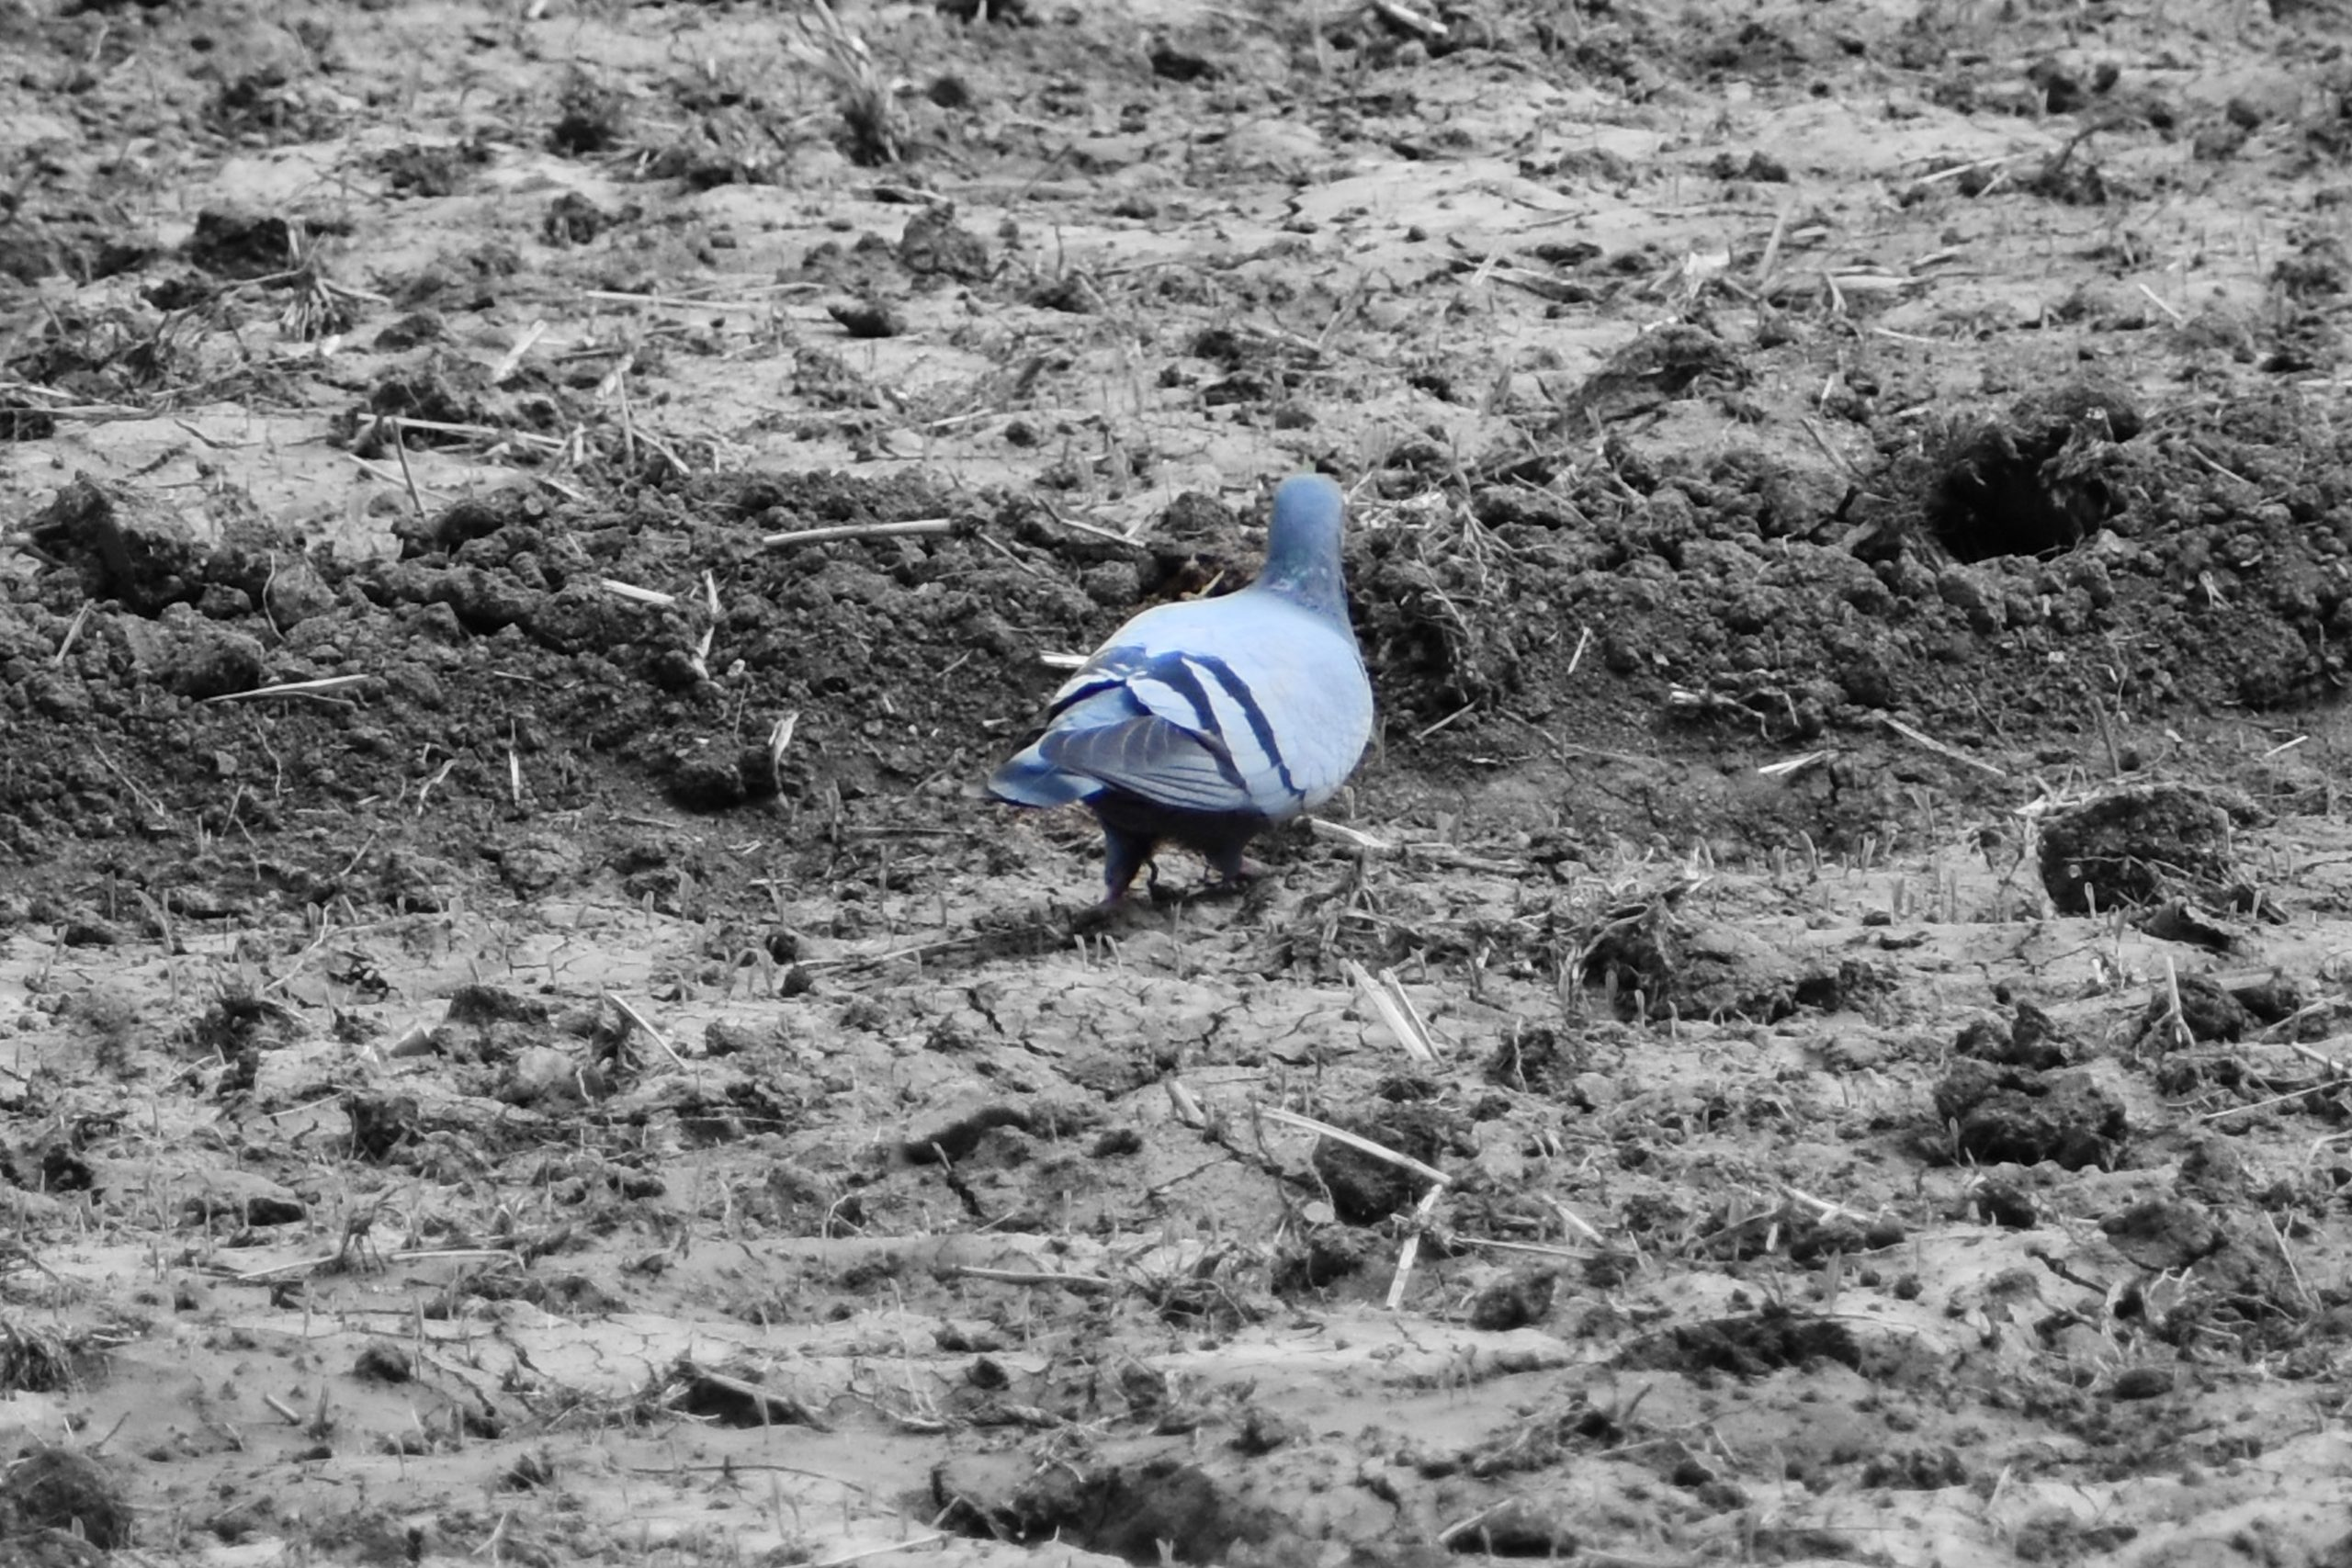 A pigeon on a field